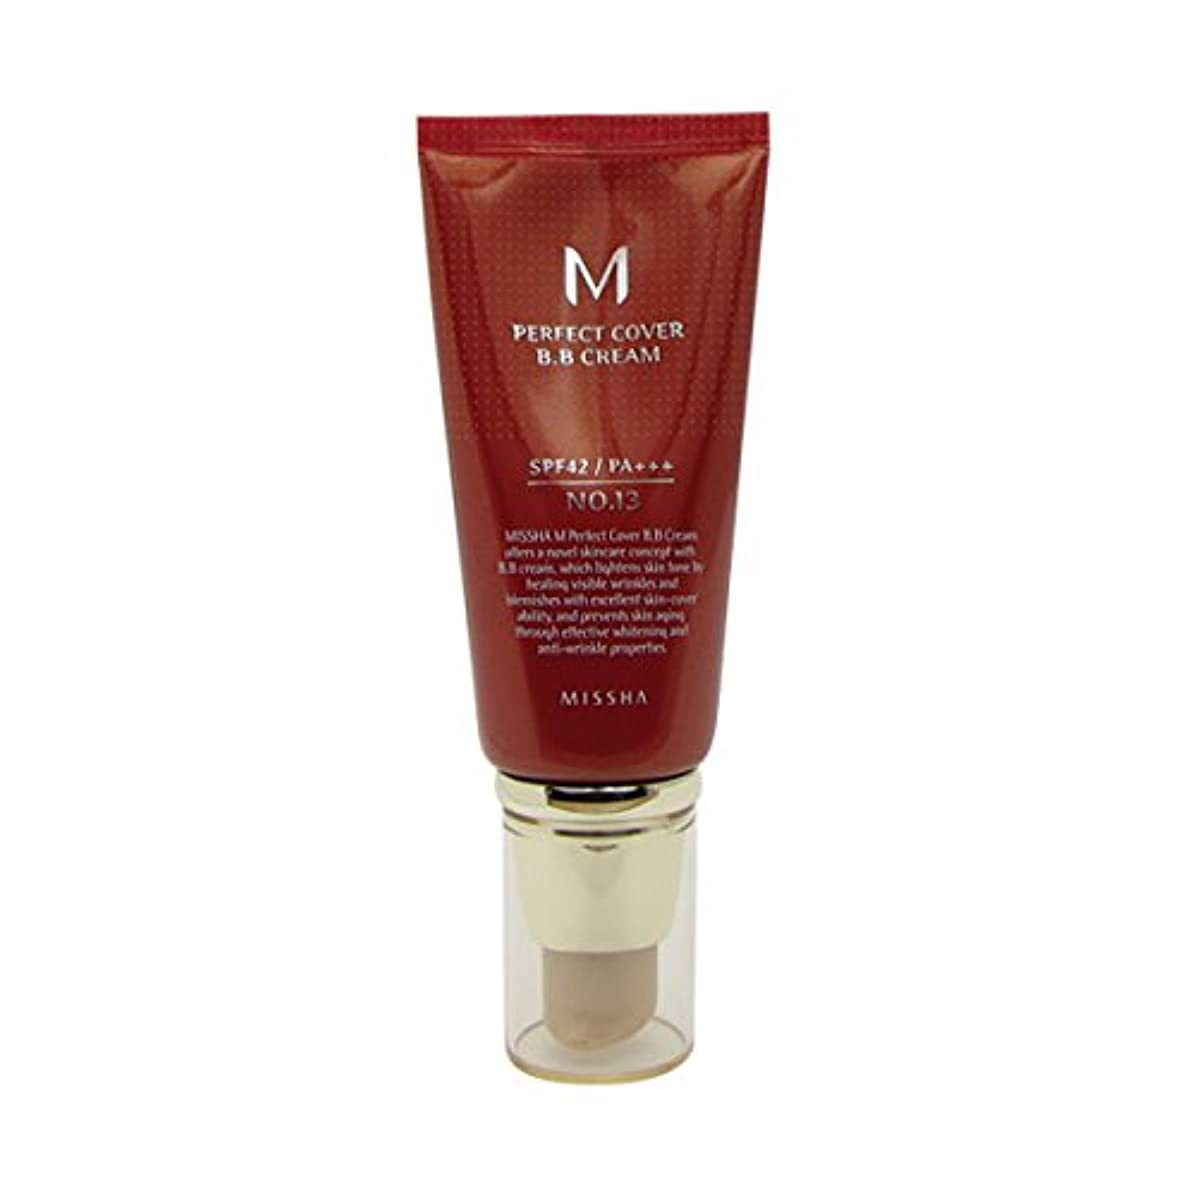 ブルーベル圧力数Missha M Perfect Cover Bb Cream Spf42/pa+++ No.13 Bright Beige 50ml [並行輸入品]